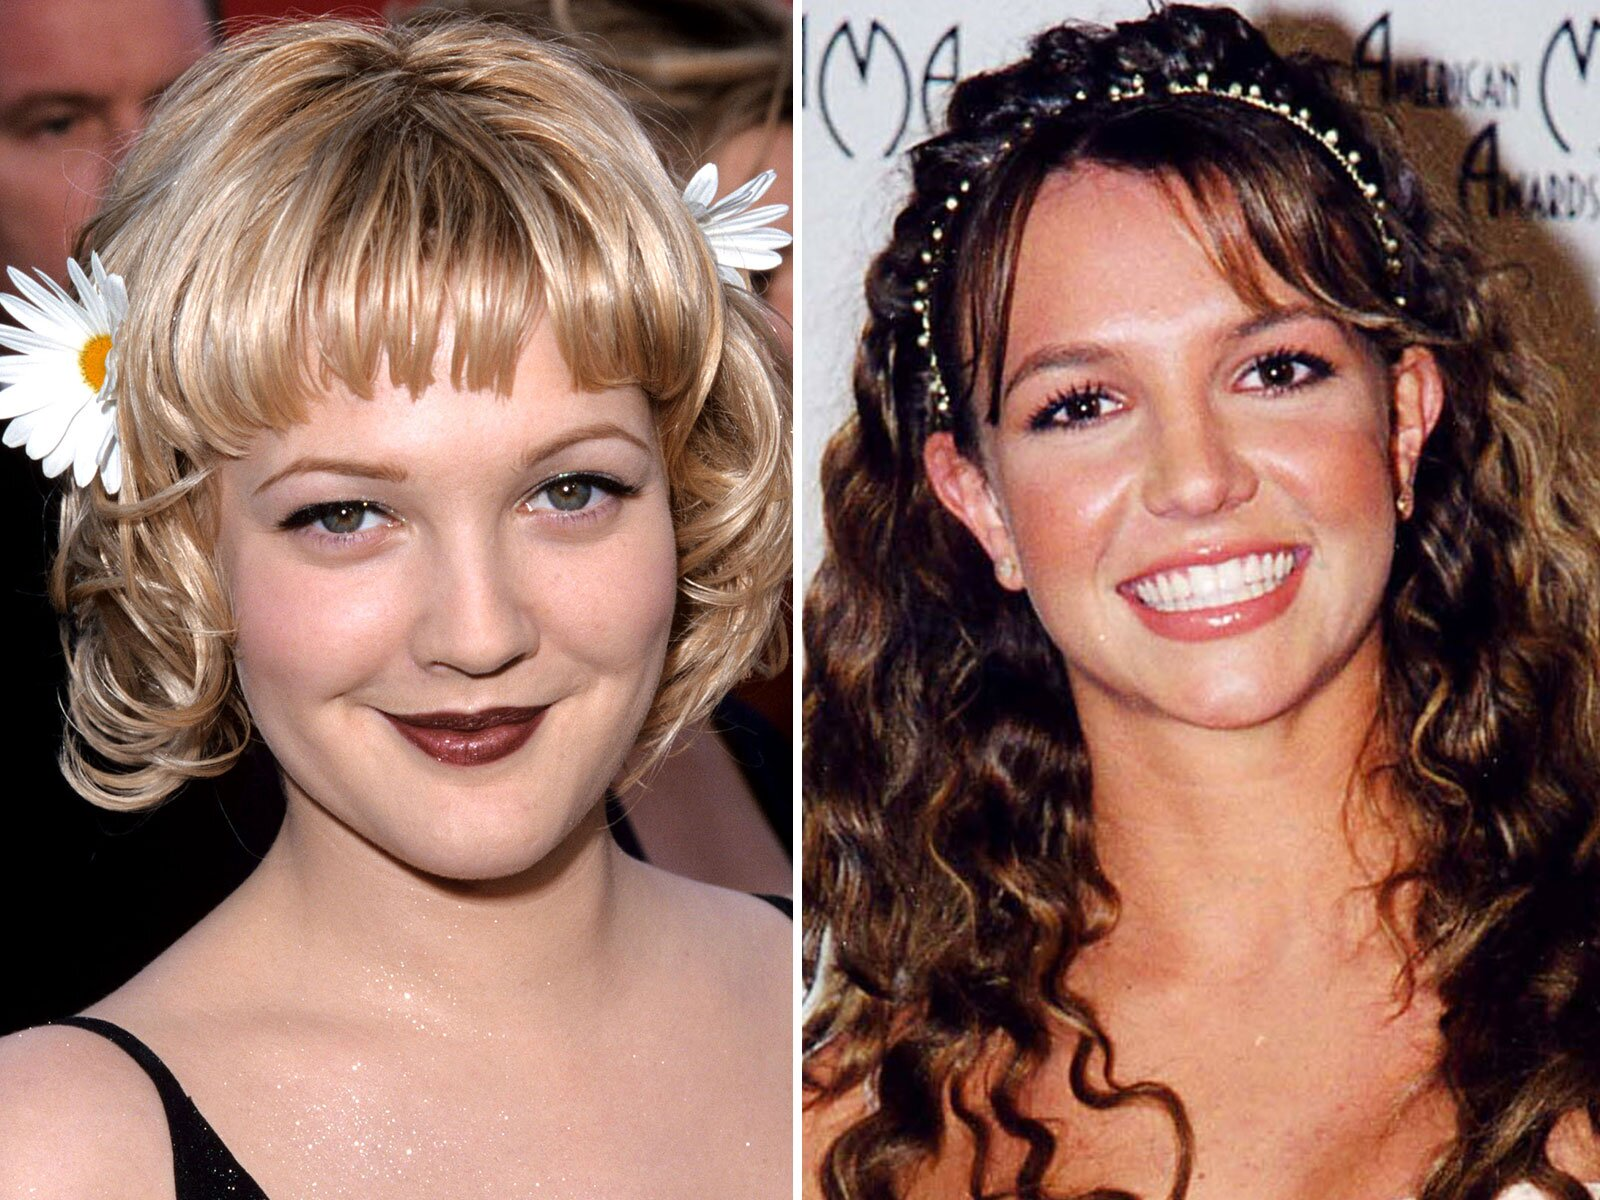 90s Hairstyles That Wed Love To See Make A Comeback Instyle